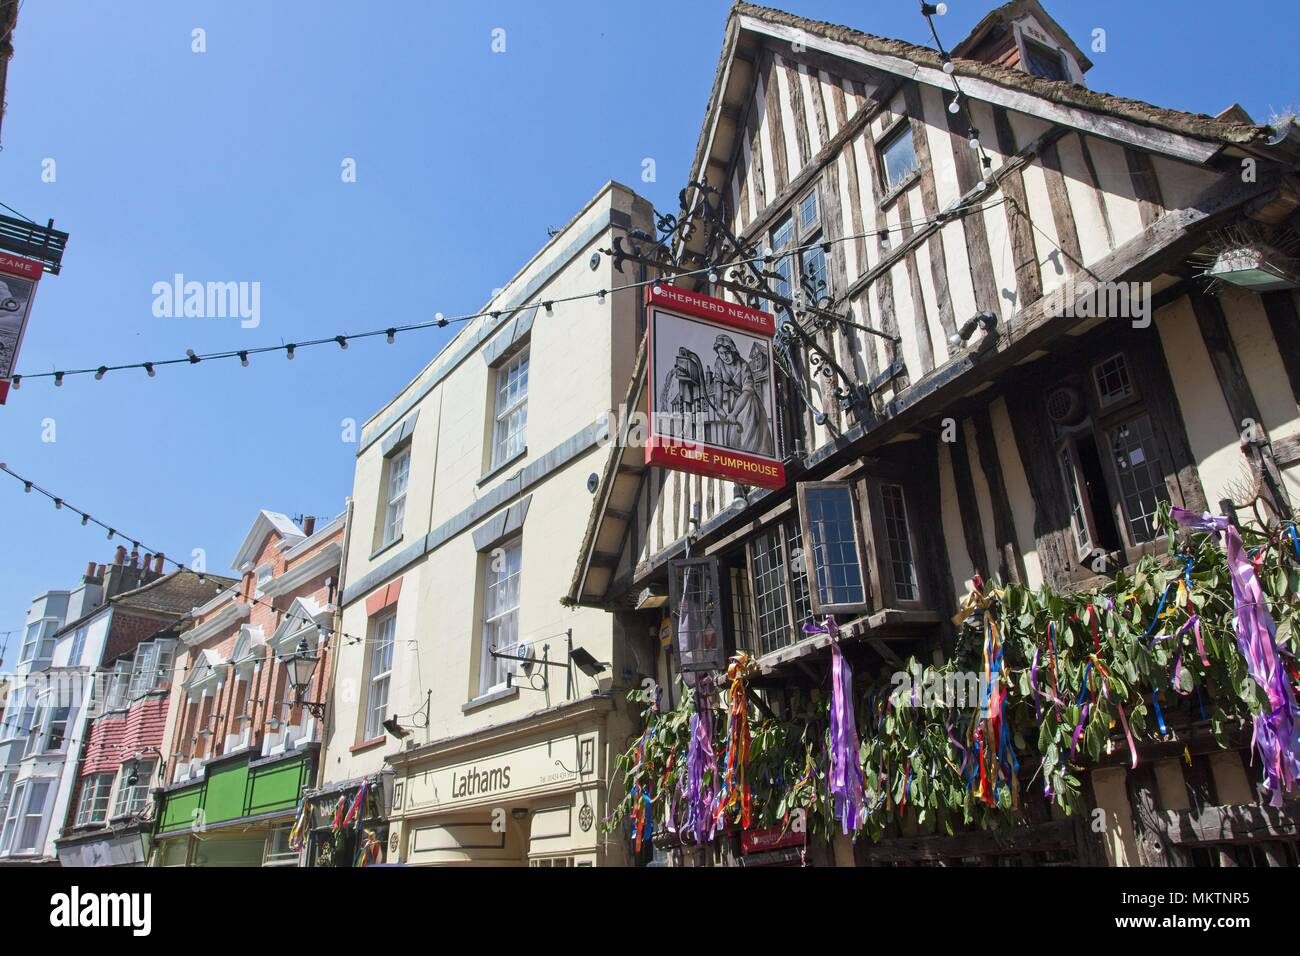 Ye Olde Pumphouse pub in Hastings Old town, East Sussex,UK - Stock Image